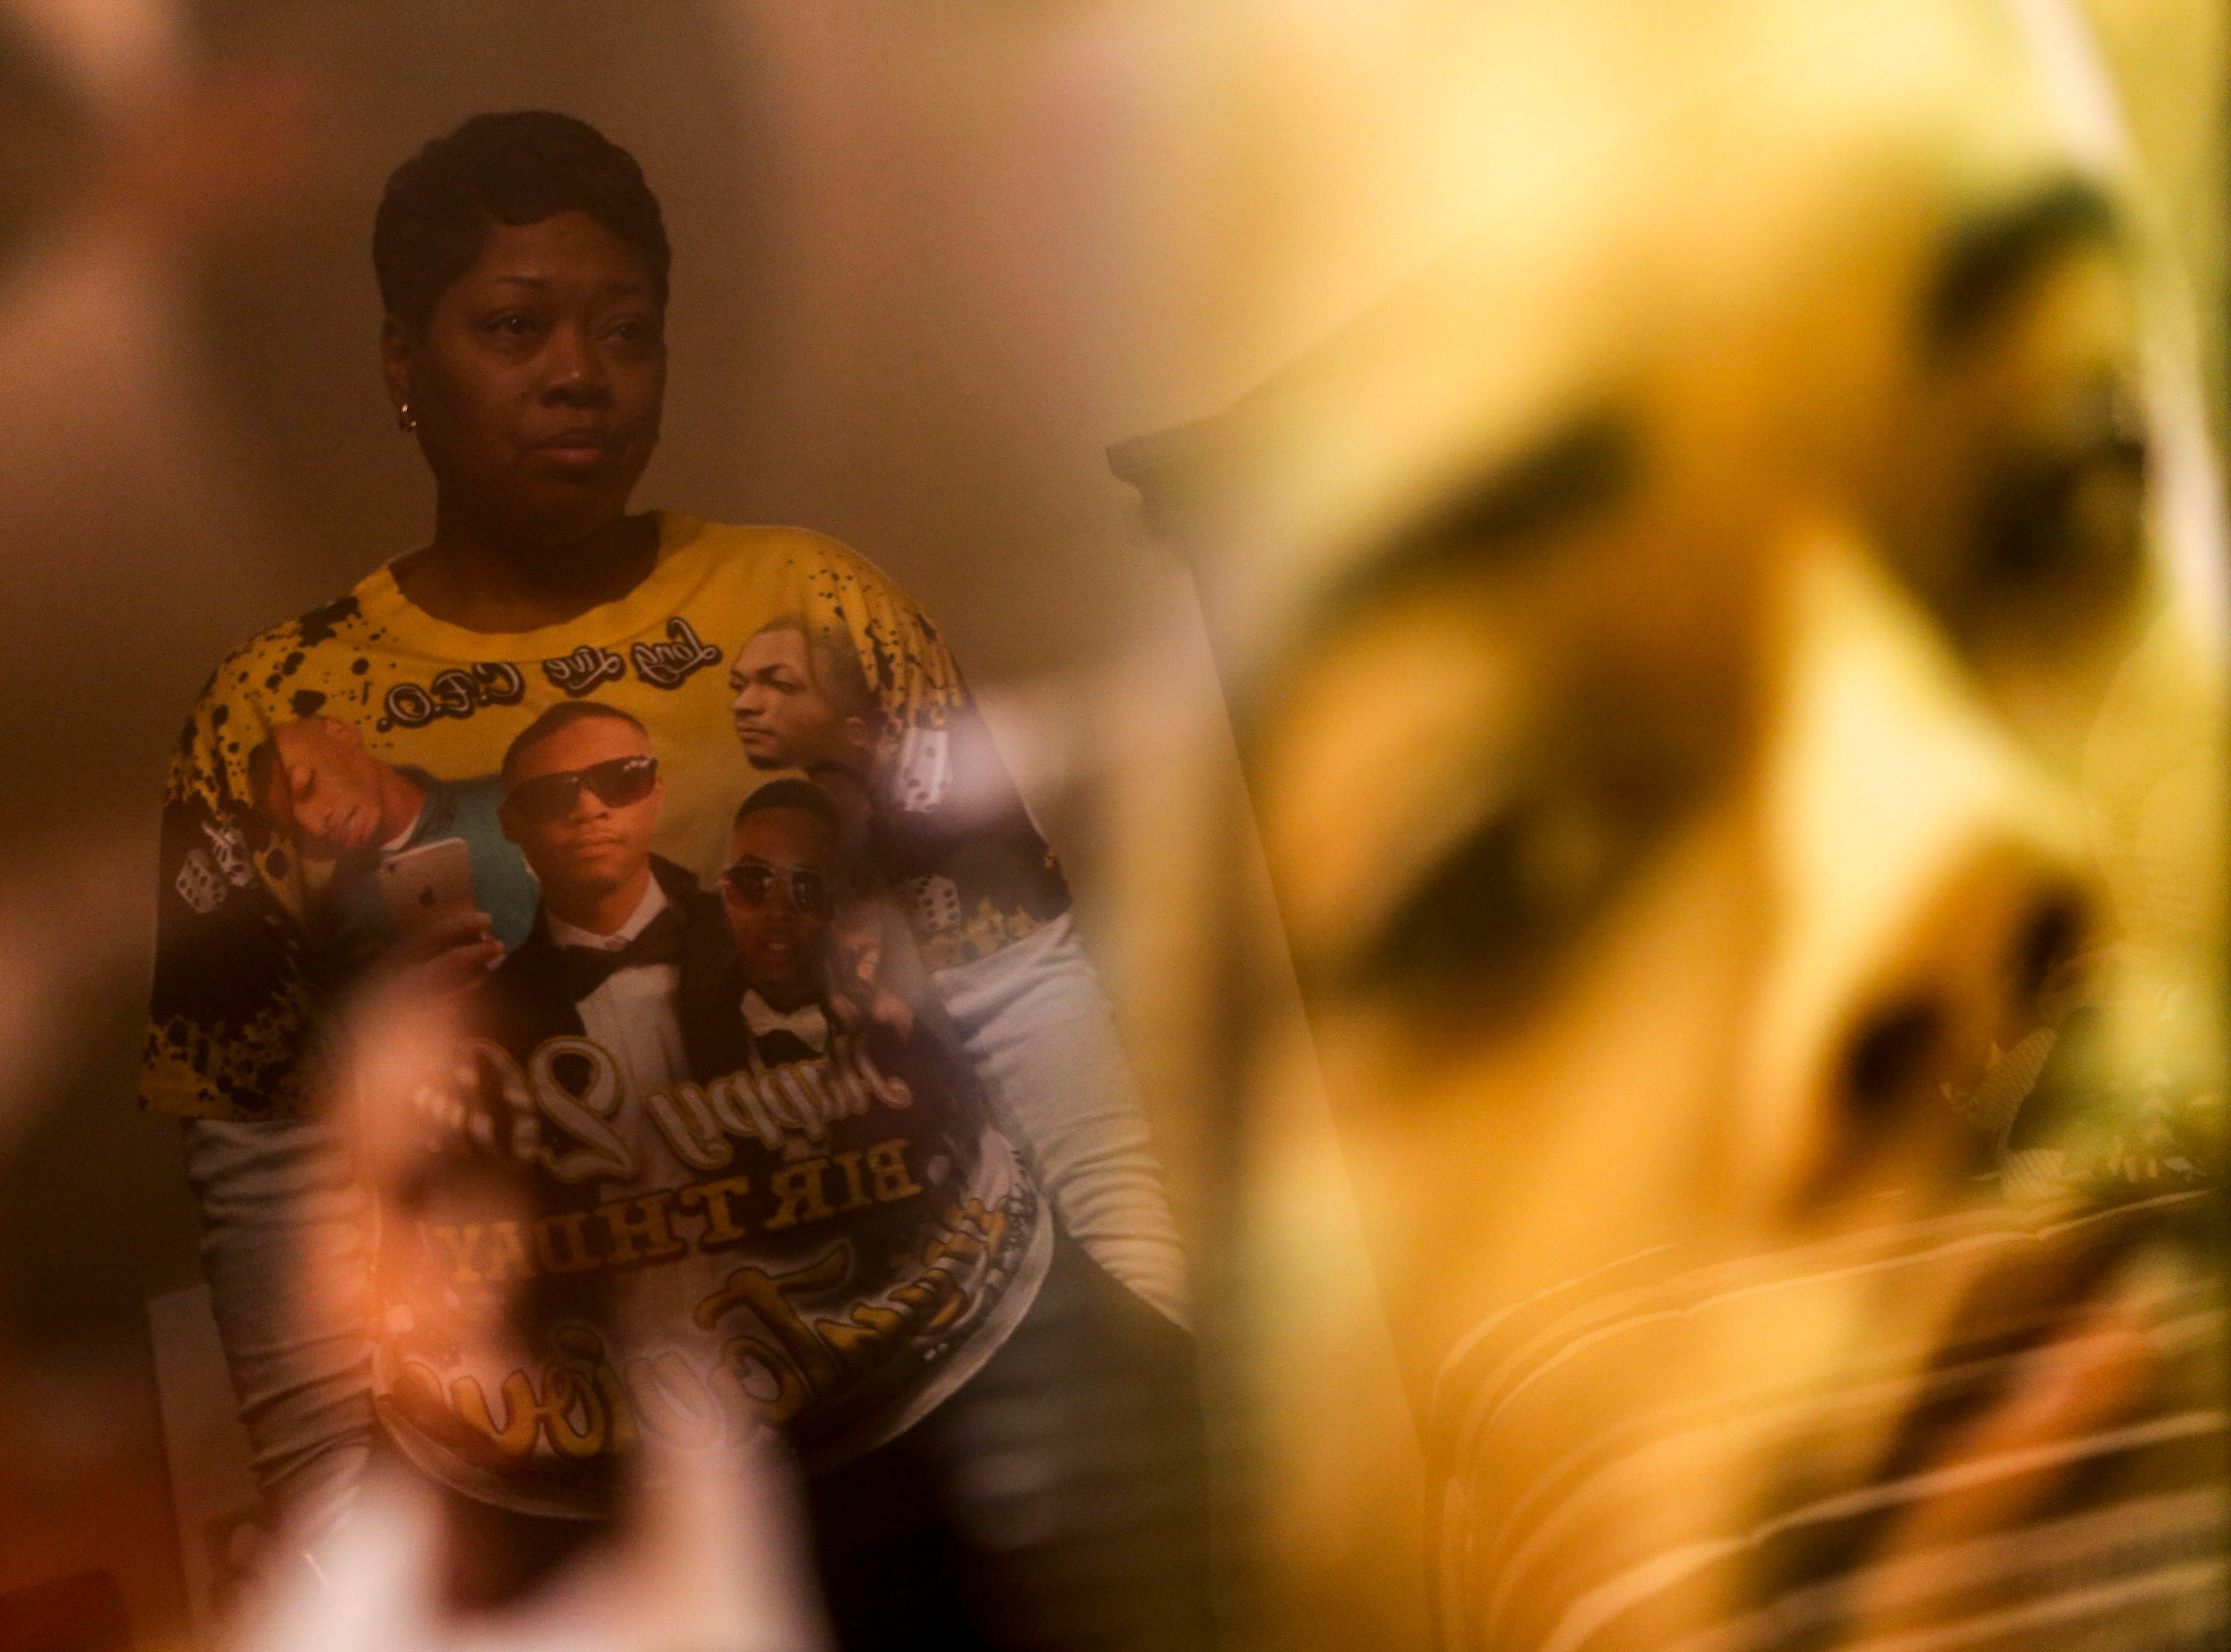 Kemmeka Currie looks on at photos of her son, Kentavious Wilson, who was killed last January a few minutes from her home at the Currie's home in Brownsville, Tenn., on Wednesday, Jan. 2, 2019.